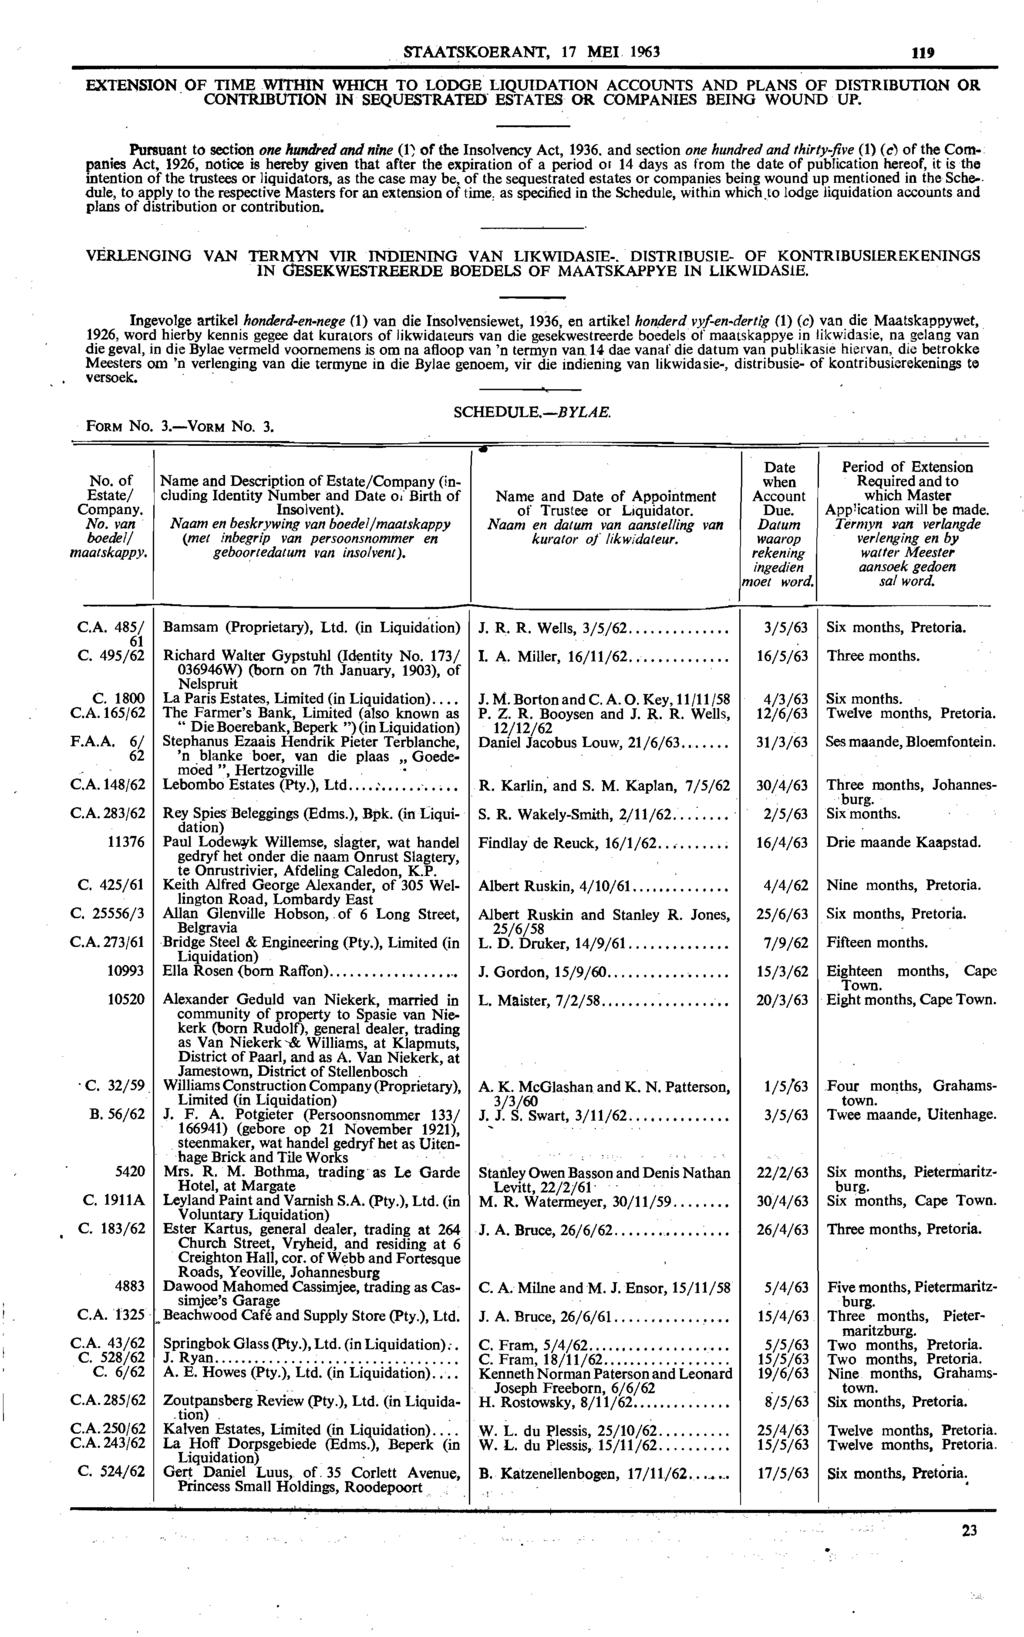 STAATSKOERANT, 17 MEl 1963 119 EXTENSION. OF TIME WITHtN WInCH TO LODGE LIQUIDATION ACCOUNTS AND PLANS OF DISTRIBUTION OR CONTRIBUTION IN SEQUESTRATED ESTATES OR COMPANIES BEING WOUND UP.